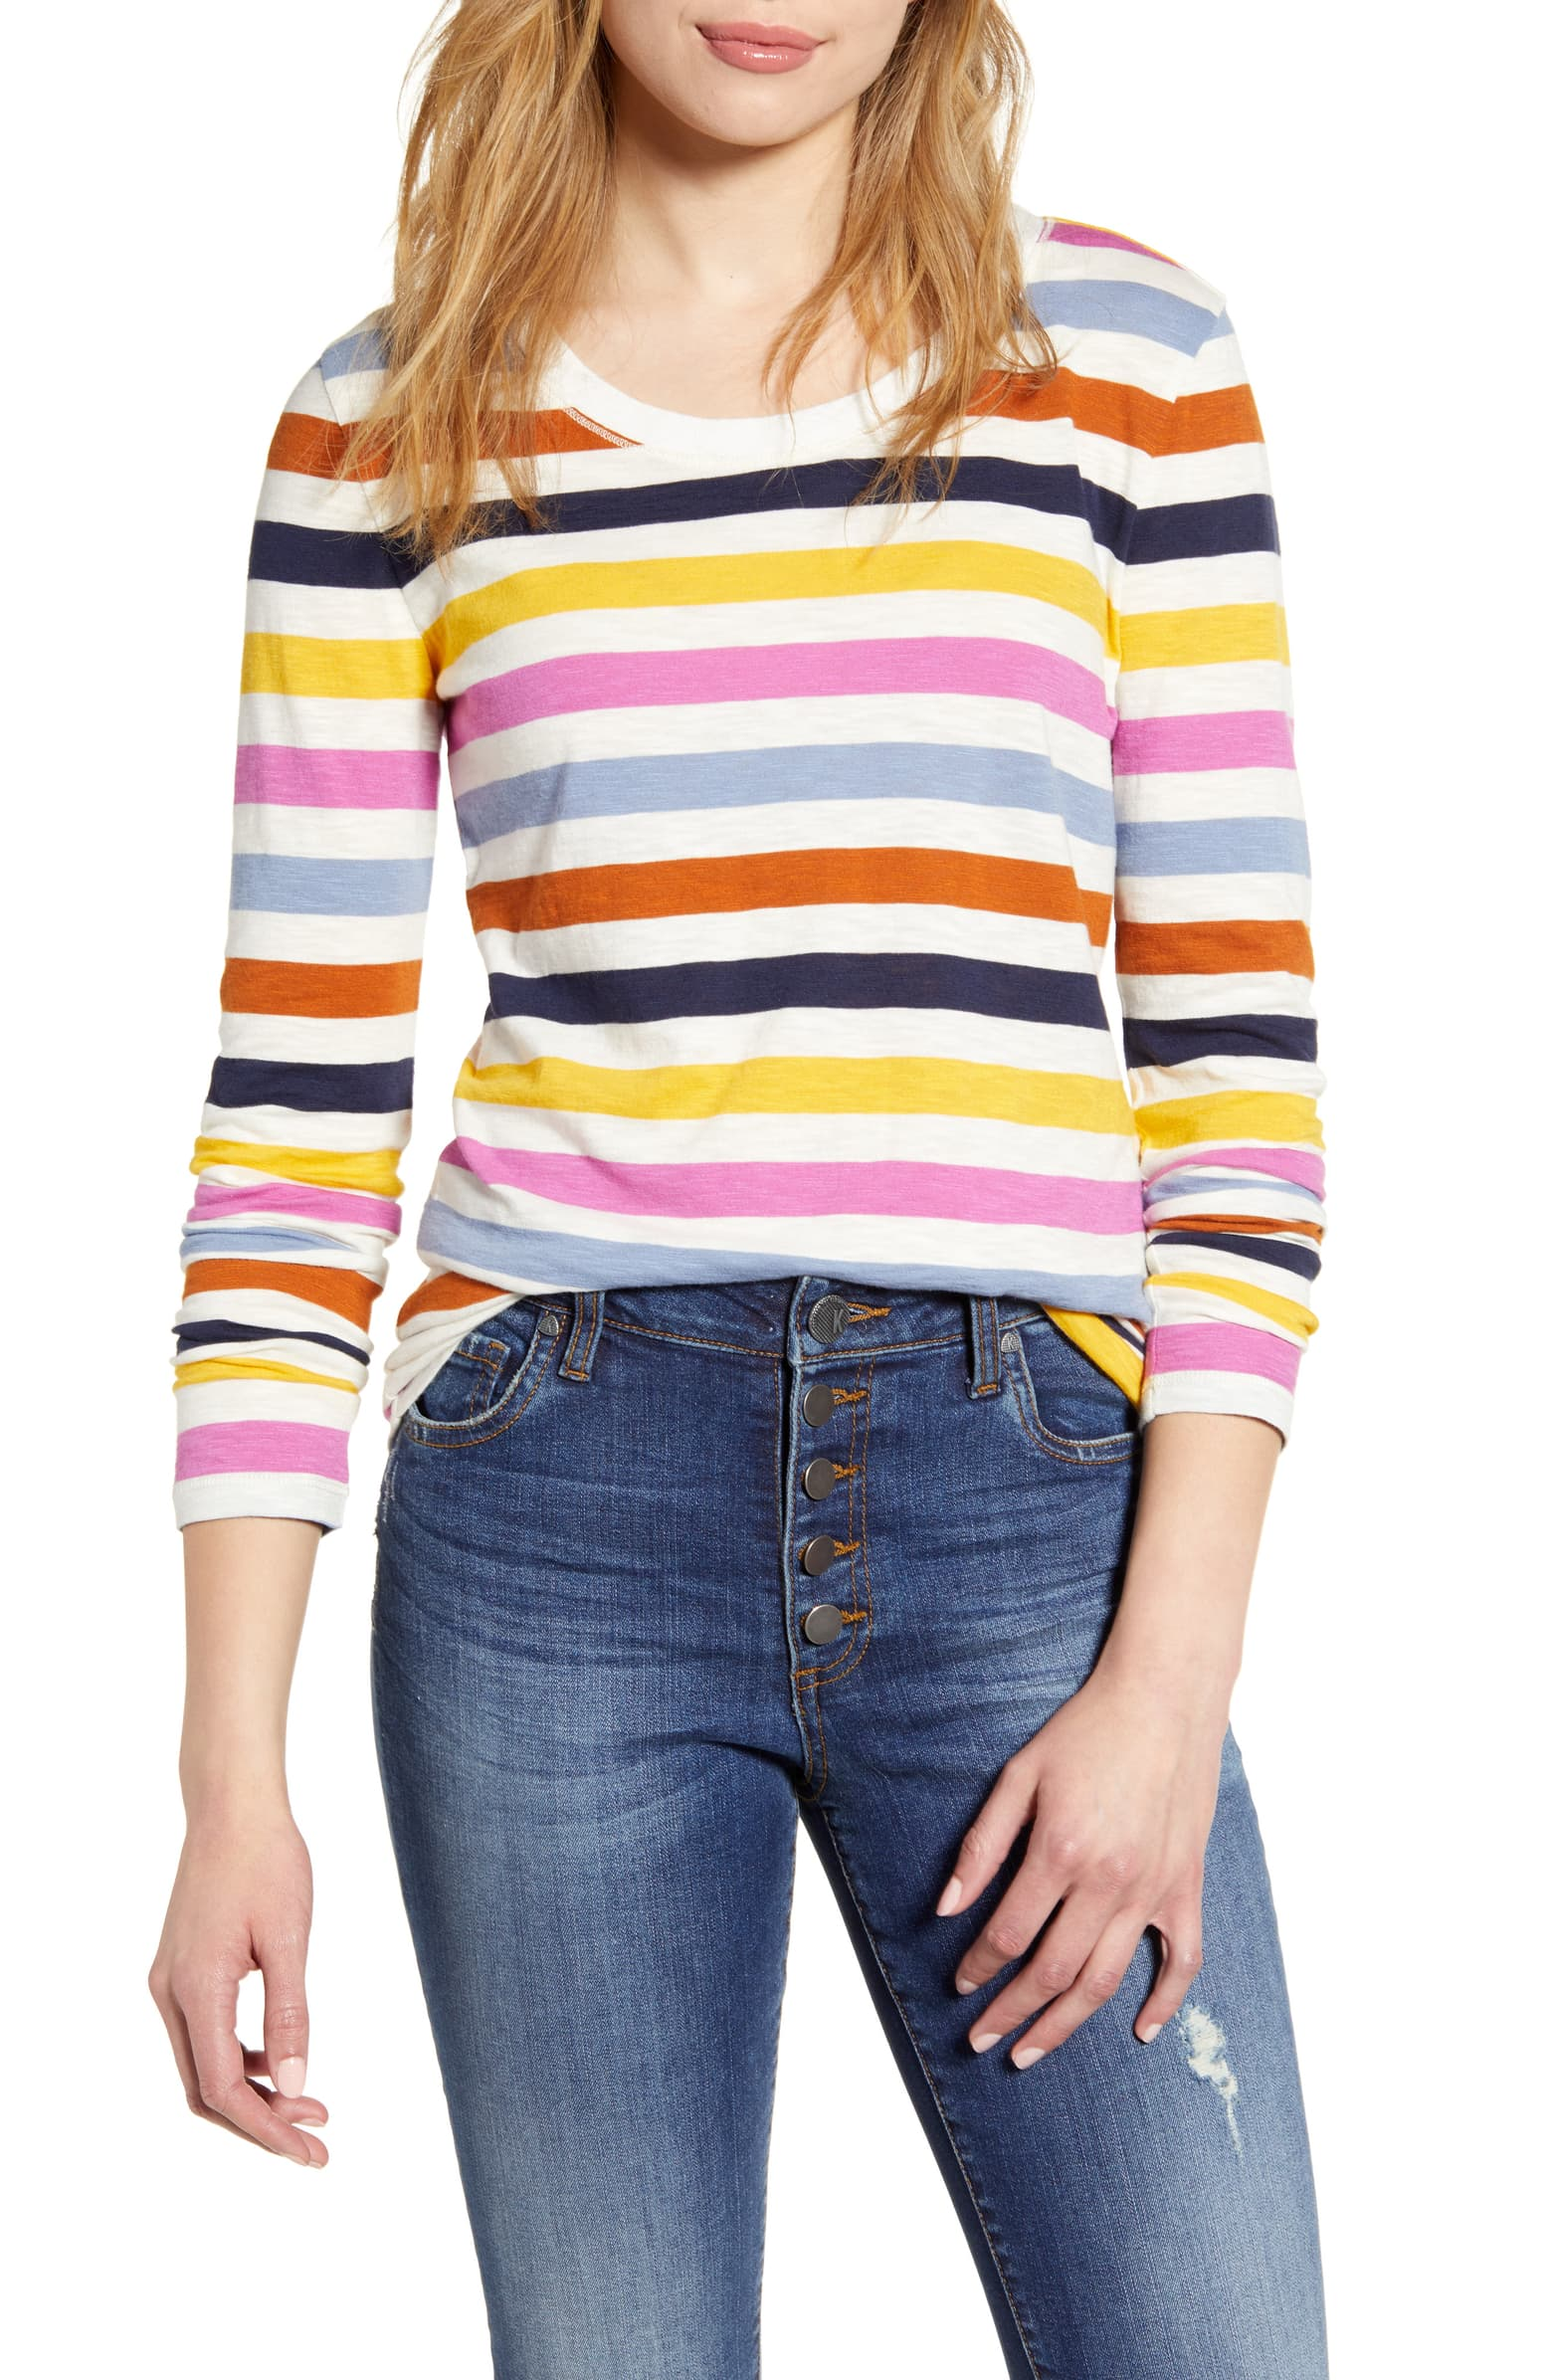 Nordstrom Anniversary Sale - #NSALE - Nordstrom Sale - Fall Fashion - Women's Fashion - Sabby Style-2